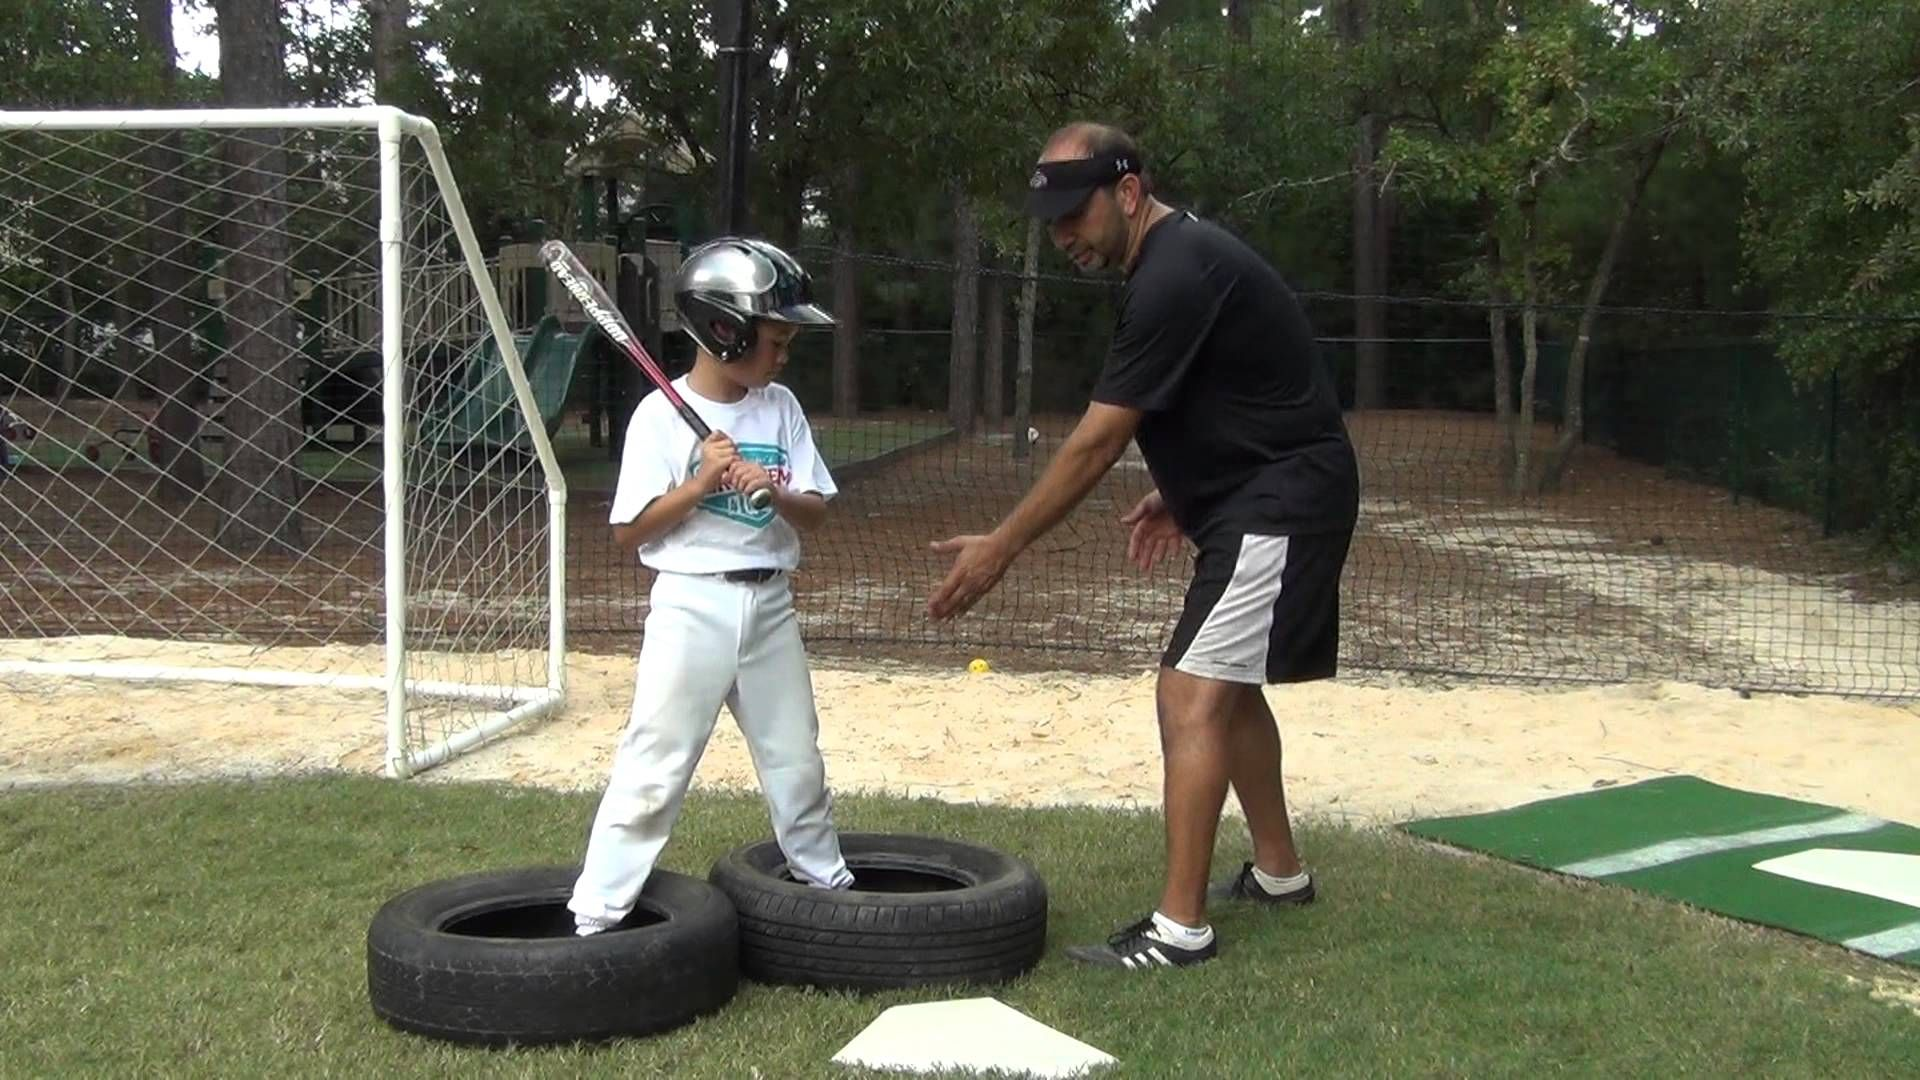 Tire Weight Shift Batting Drill With Images Baseball